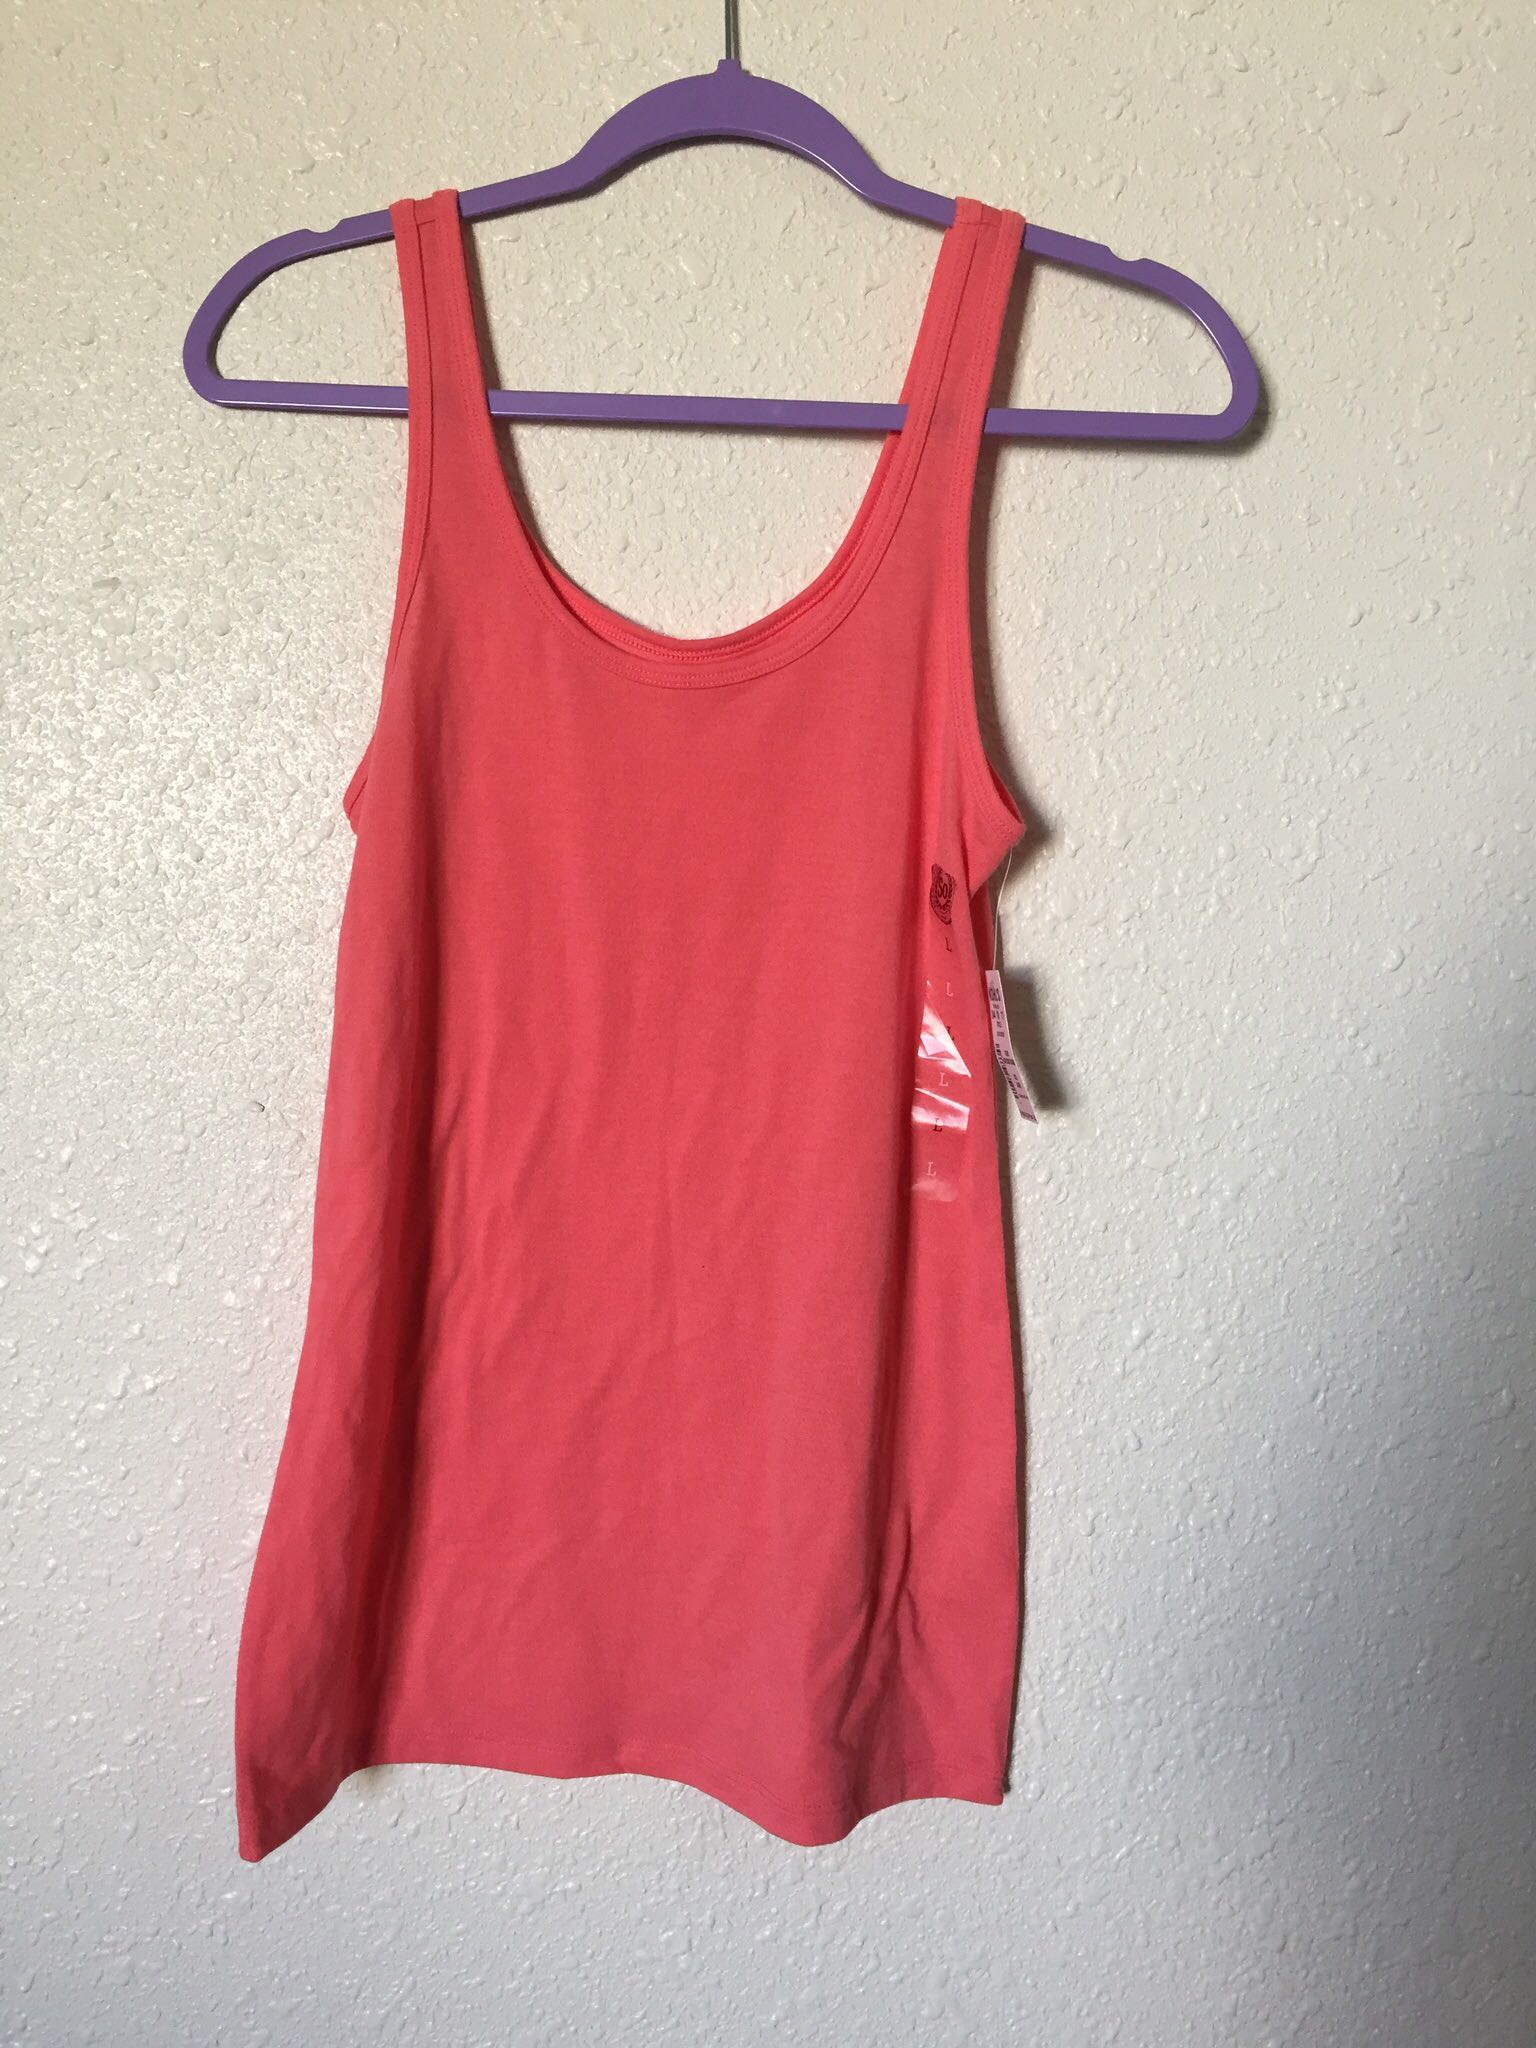 NWT Coral Tank Top